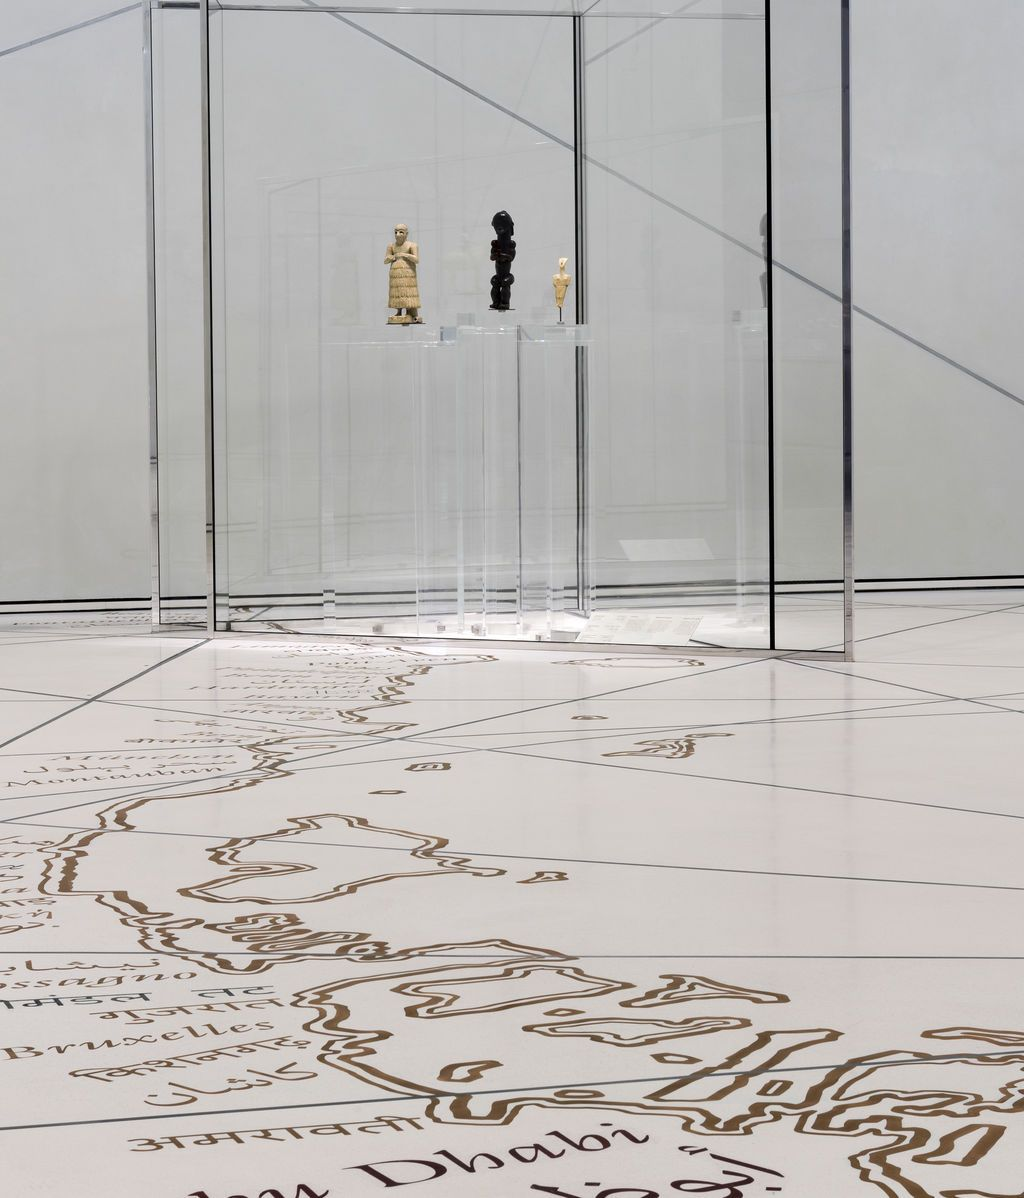 2. Louvre Abu Dhabi – The Great Vestibule © Louvre Abu Dhabi - Photography Marc Domage